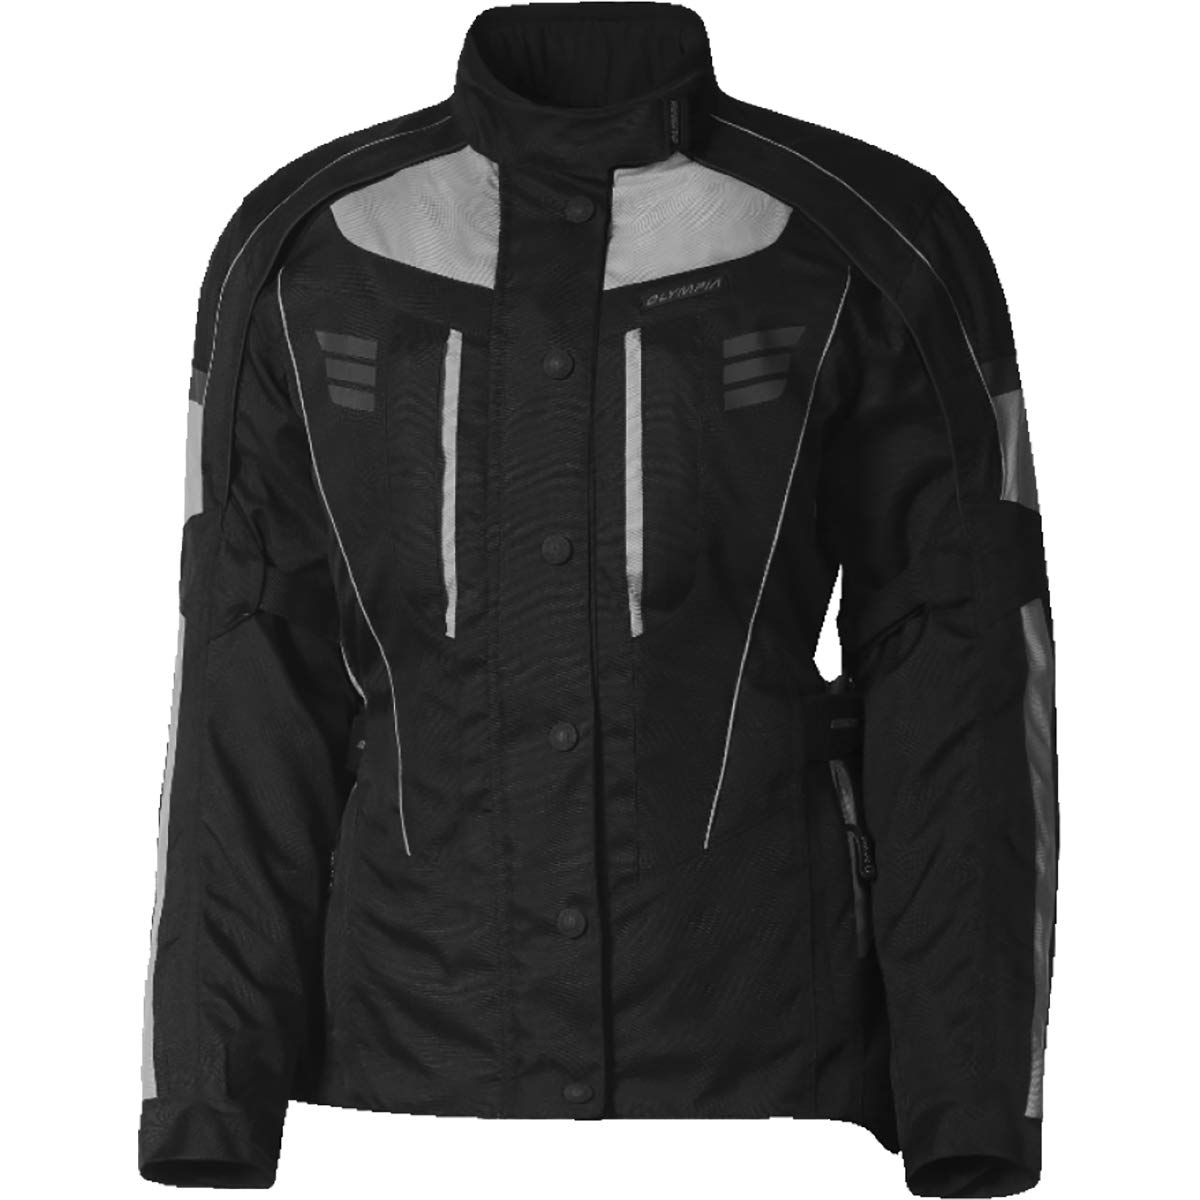 Olympia Unisex-Adult Air glide 5 Jacket Red XXX-Large MJ410R-3XL